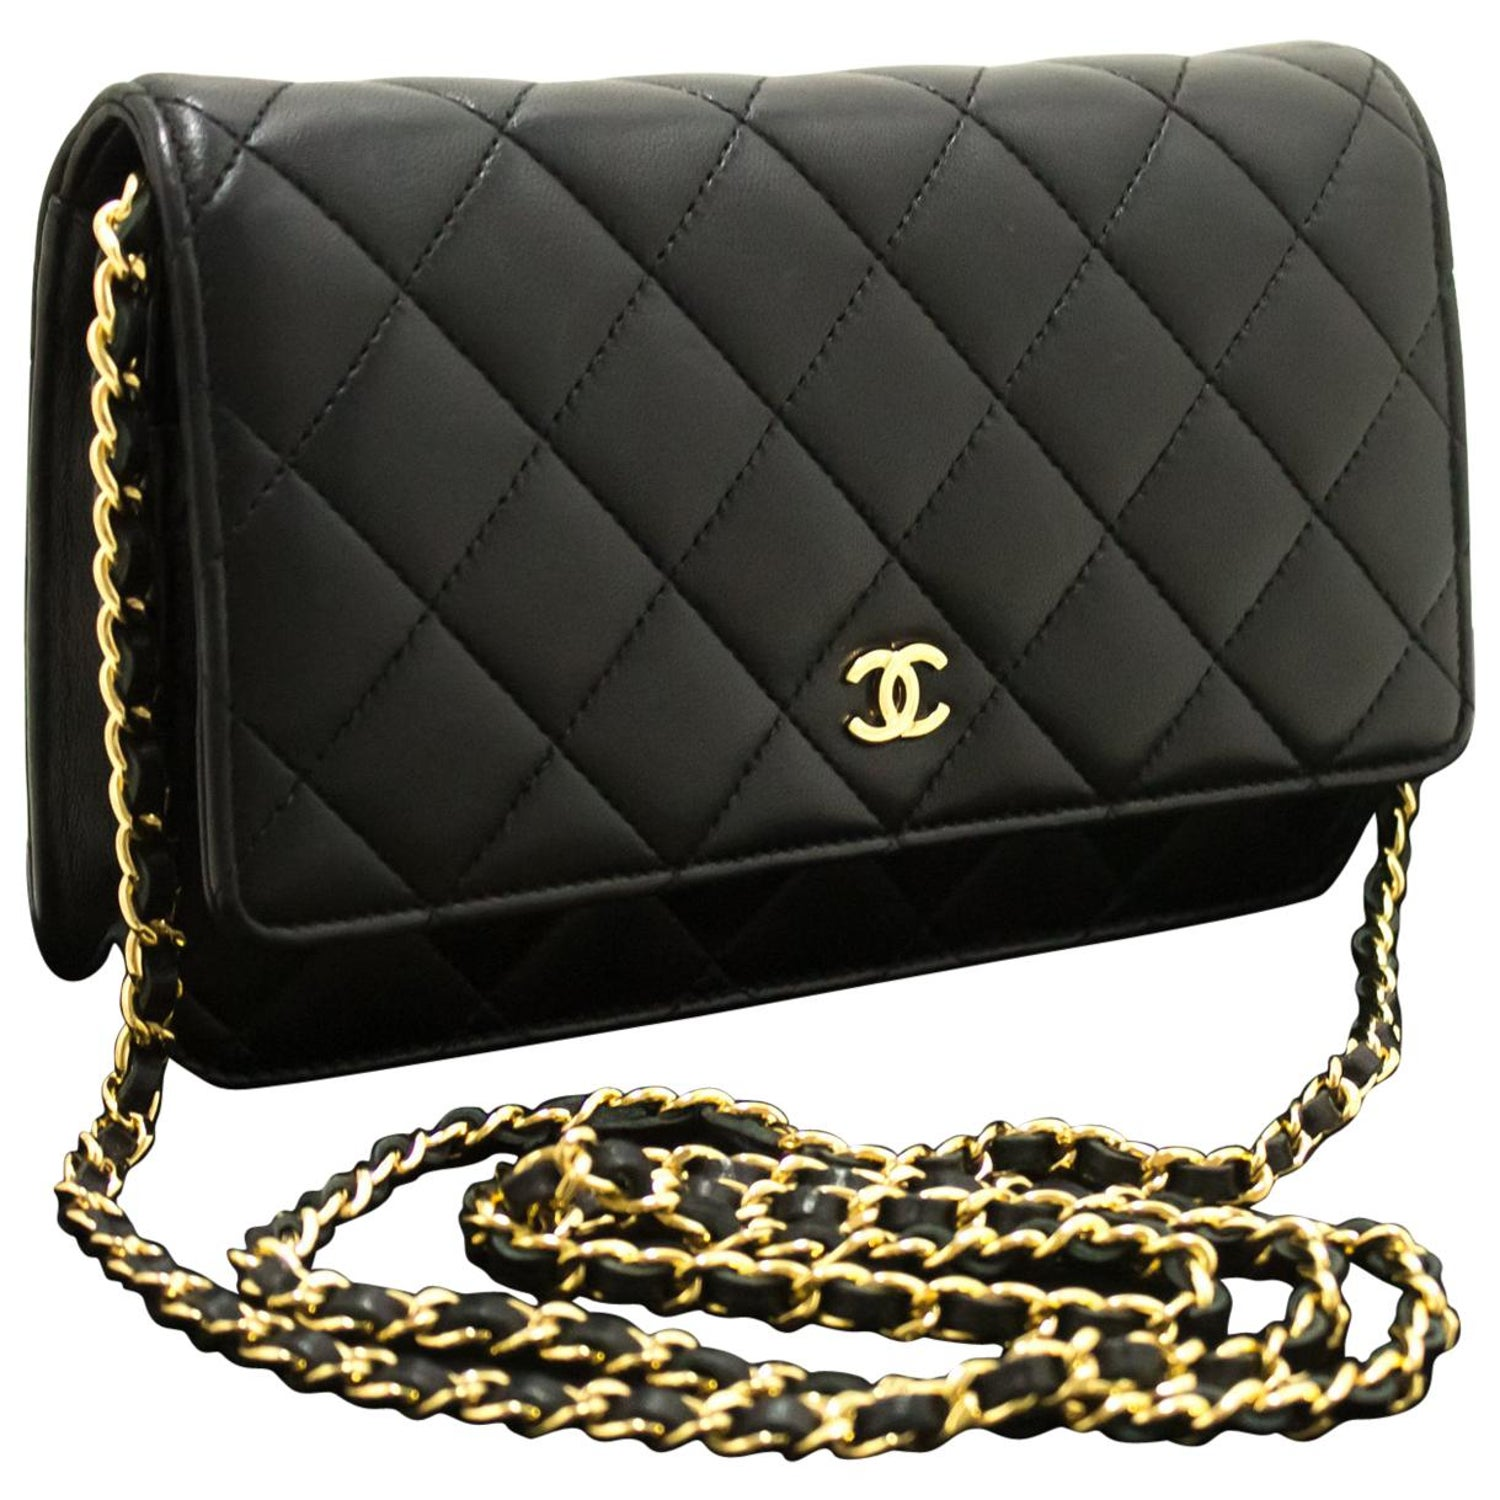 1689ff8fc5a5 CHANEL Black WOC Wallet On Chain Shoulder Crossbody Bag Lambskin at 1stdibs